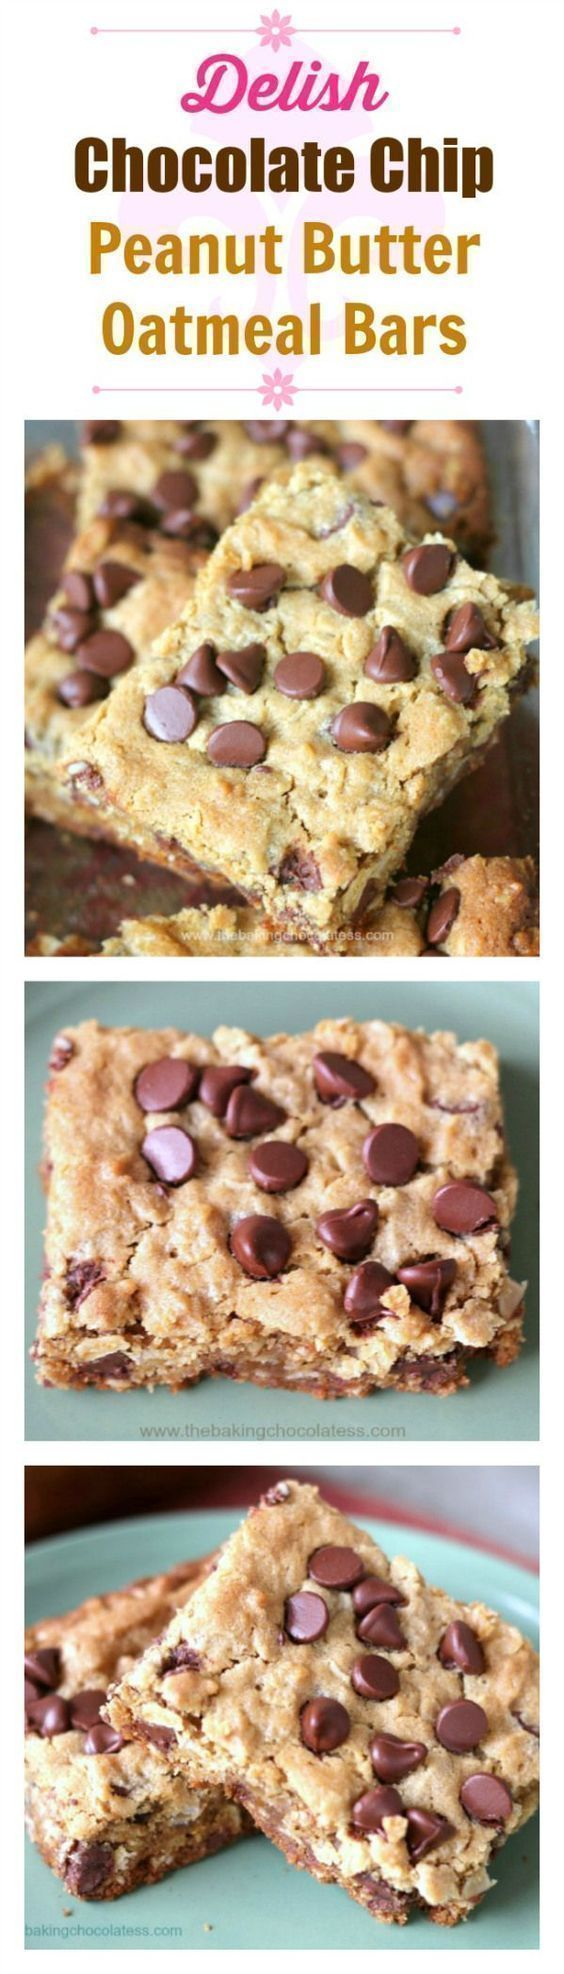 Delish Chocolate Chip Peanut Butter Oatmeal Bars – The Baking ChocolaTess (bake bar peanut butter)